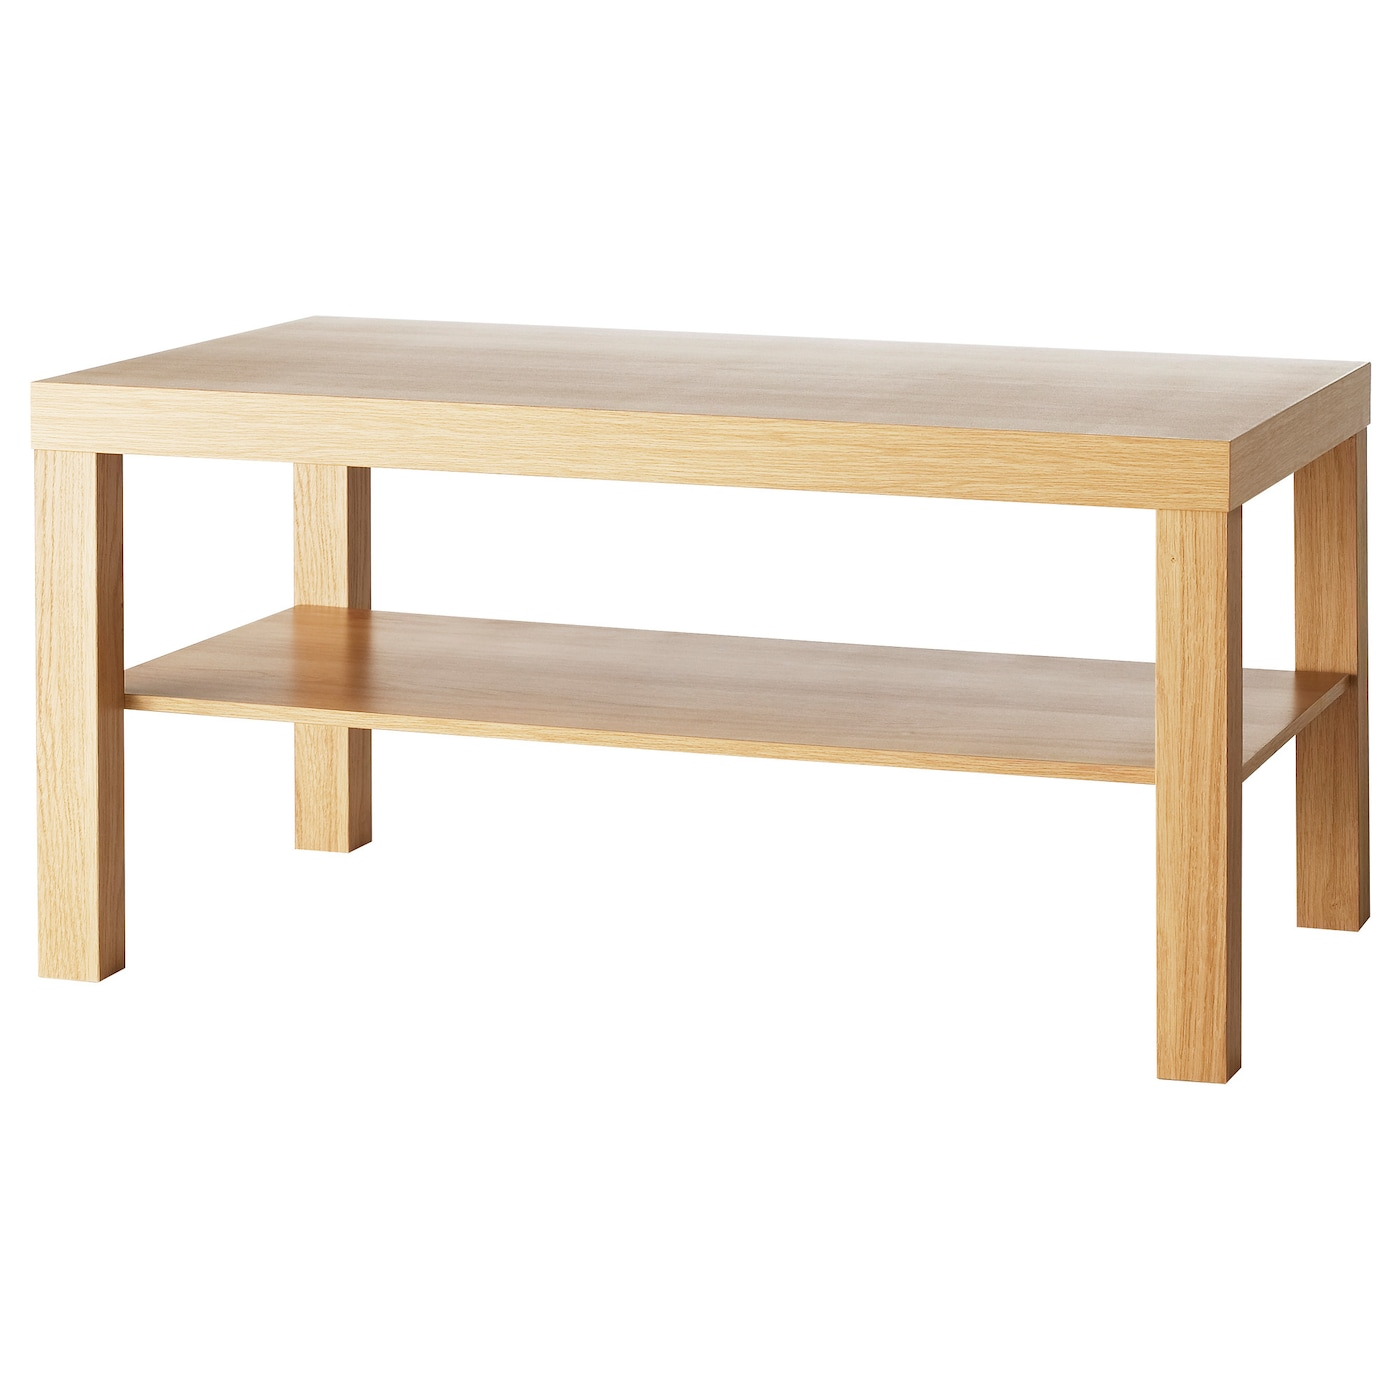 Lack coffee table oak effect 90x55 cm ikea for Coffee end tables